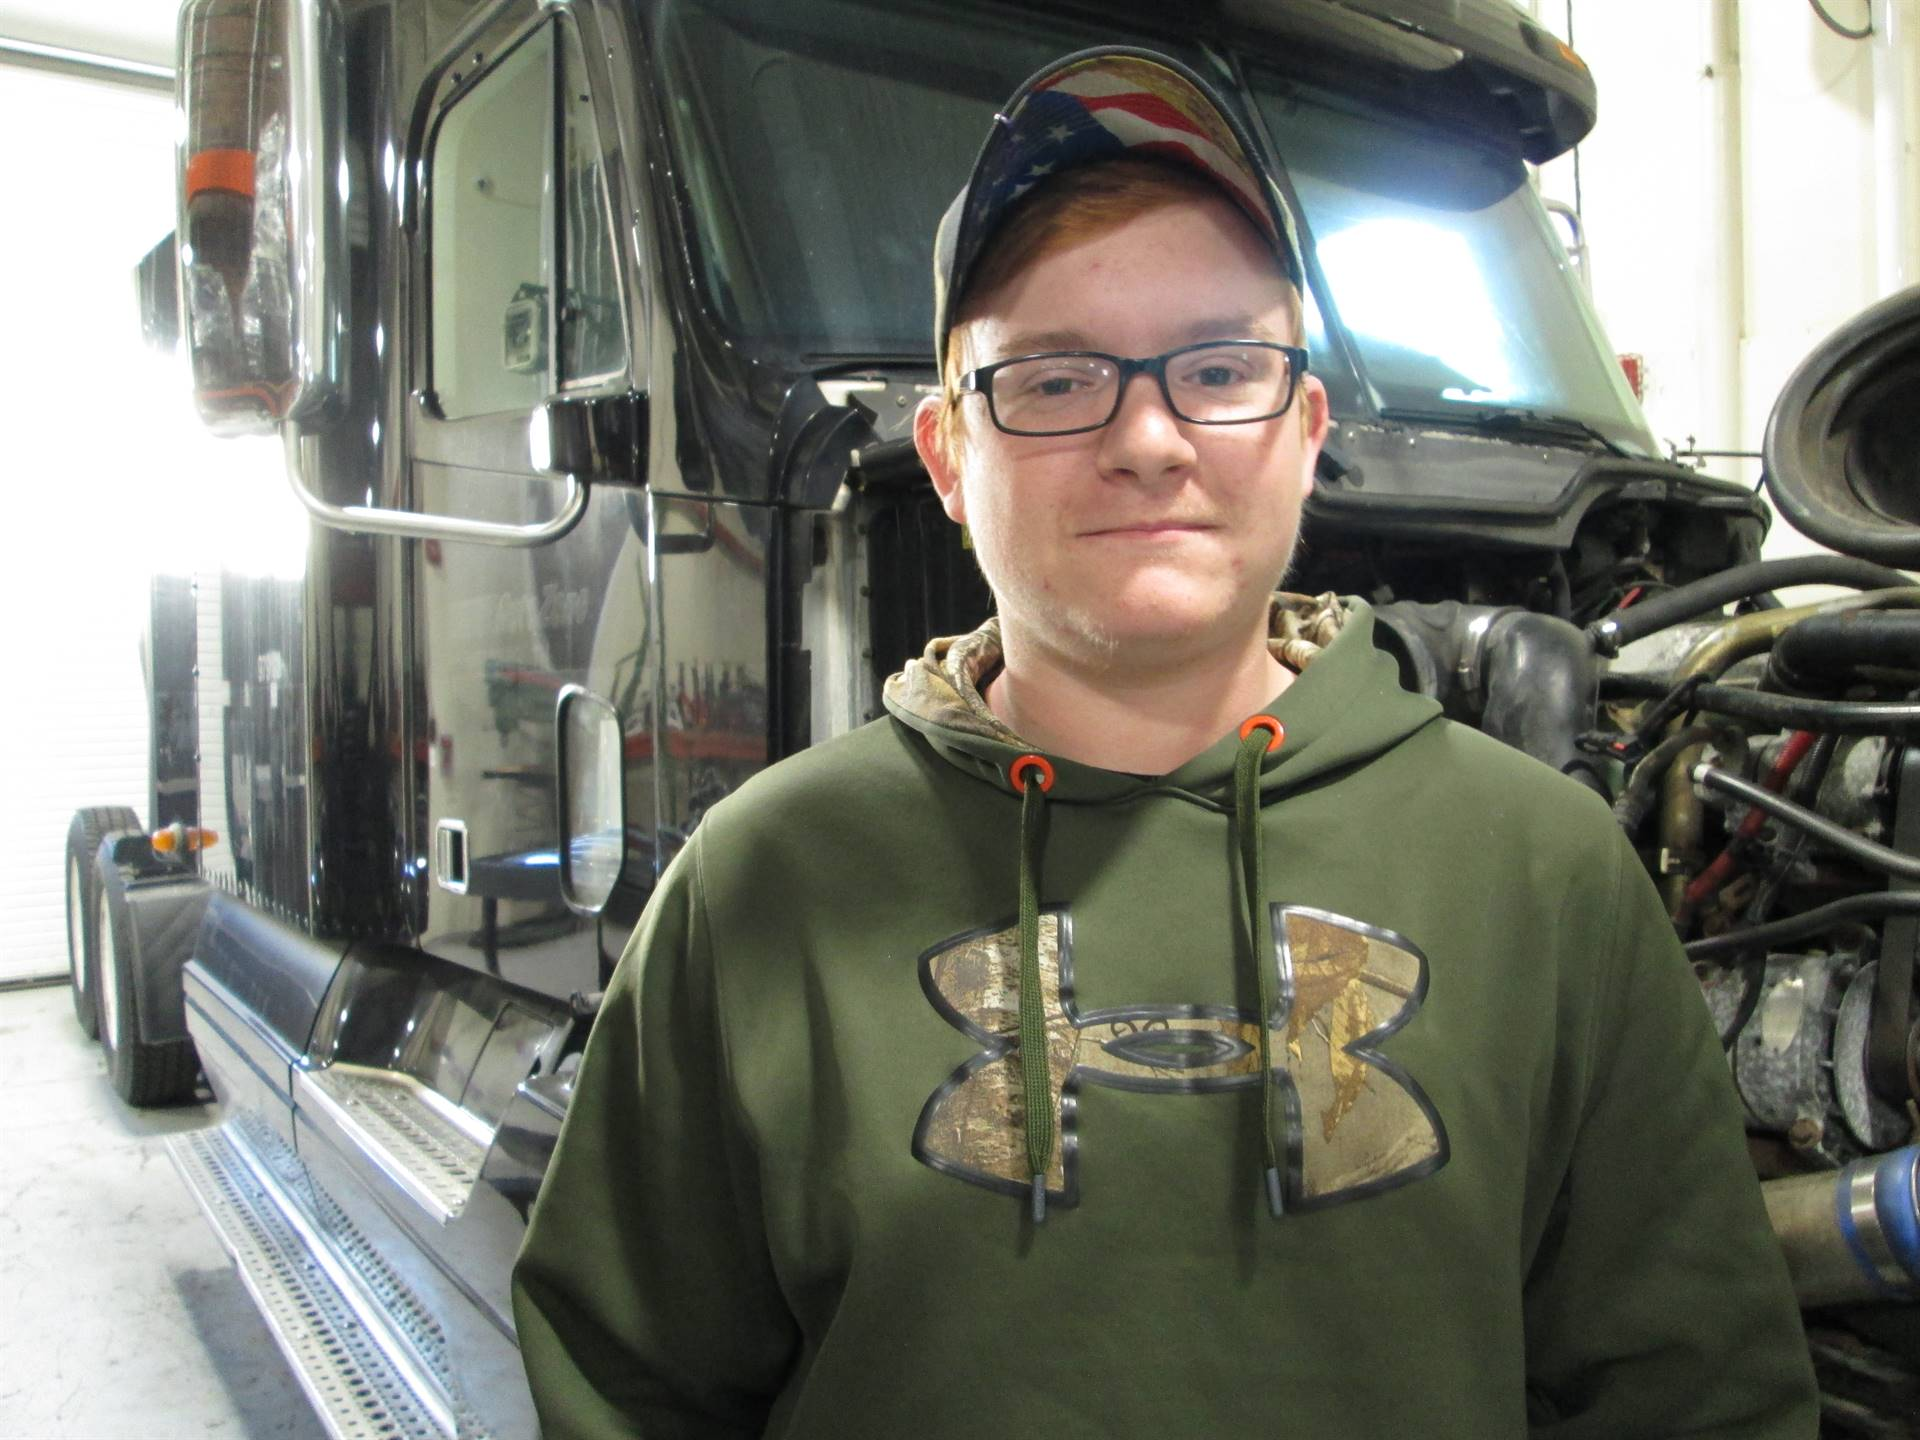 Joshua Wengerd - Diesel Technology - D & J Precision Machine LLC